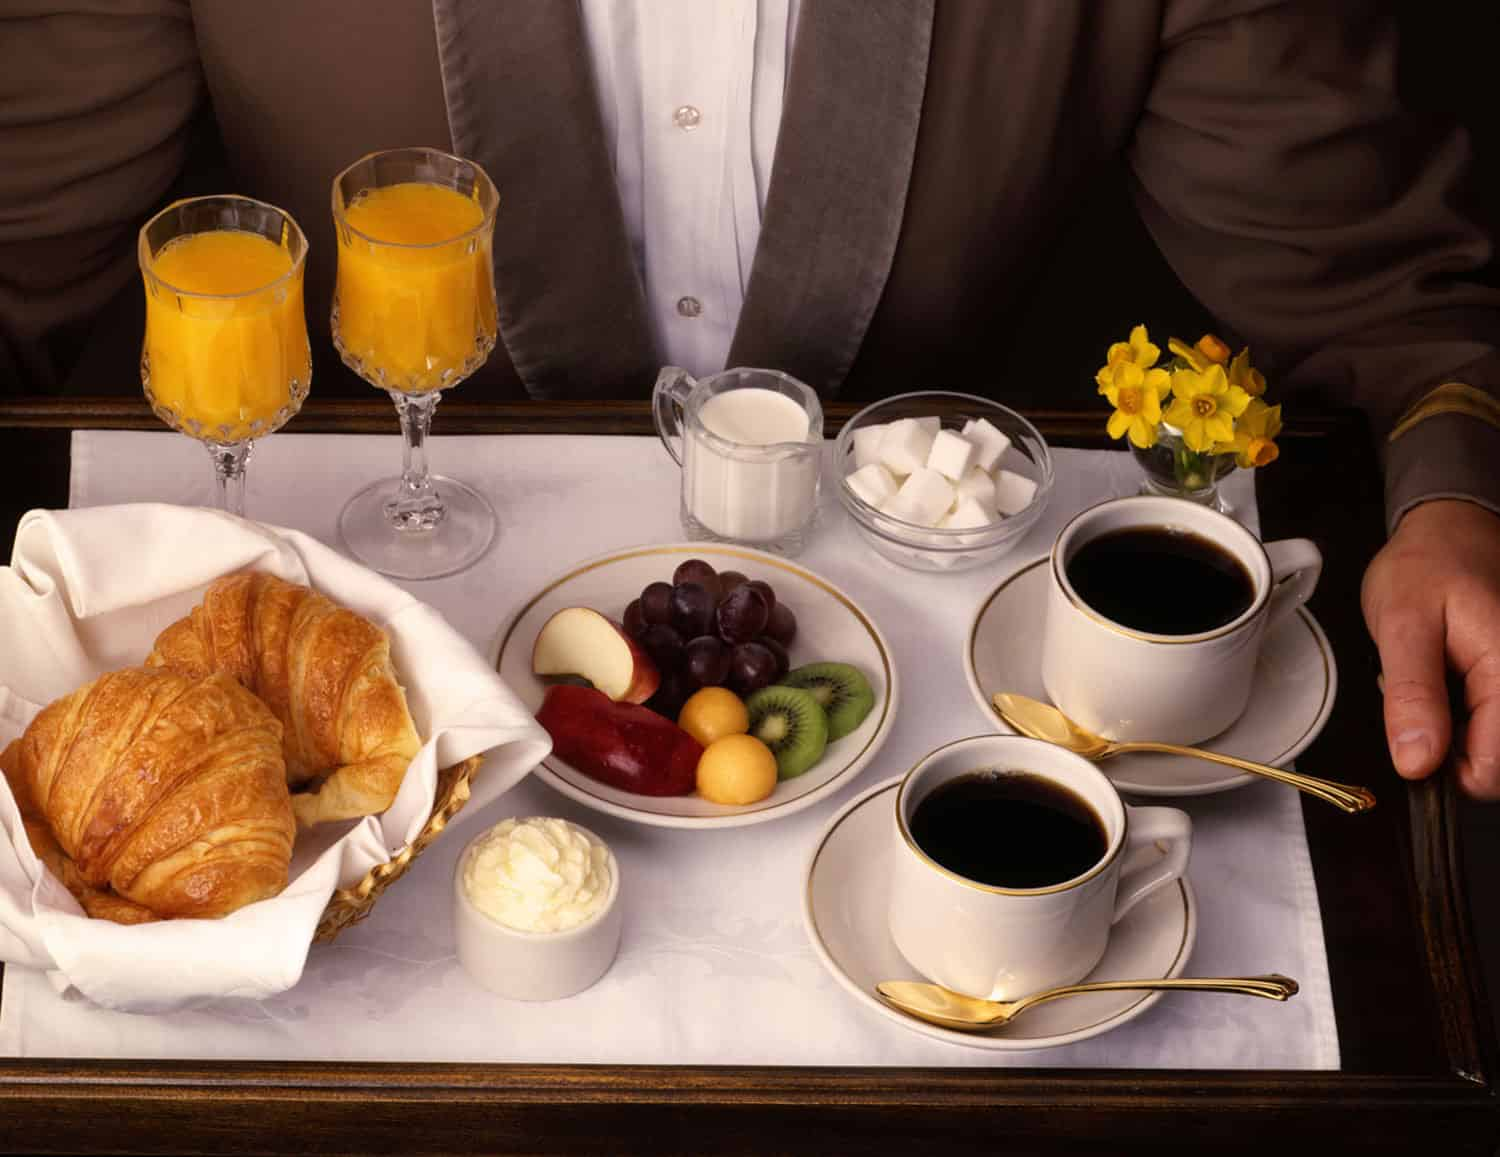 24hour room service at the Rembrandt Hotel London